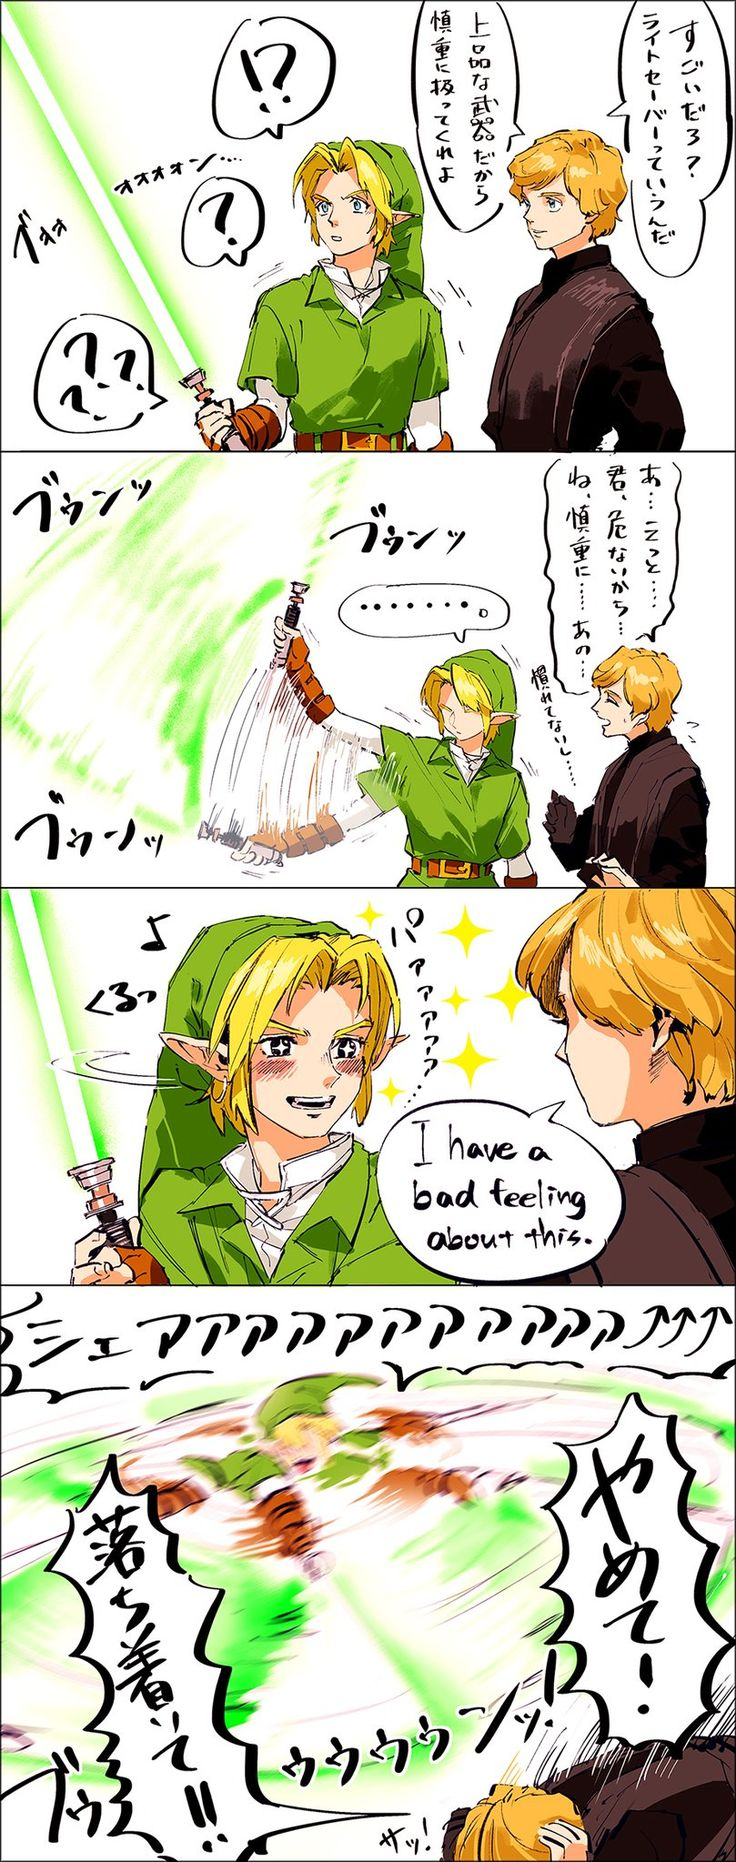 #TheLegendOfZelda x #StarWars comic by @be_nama Link, don't toy with that.